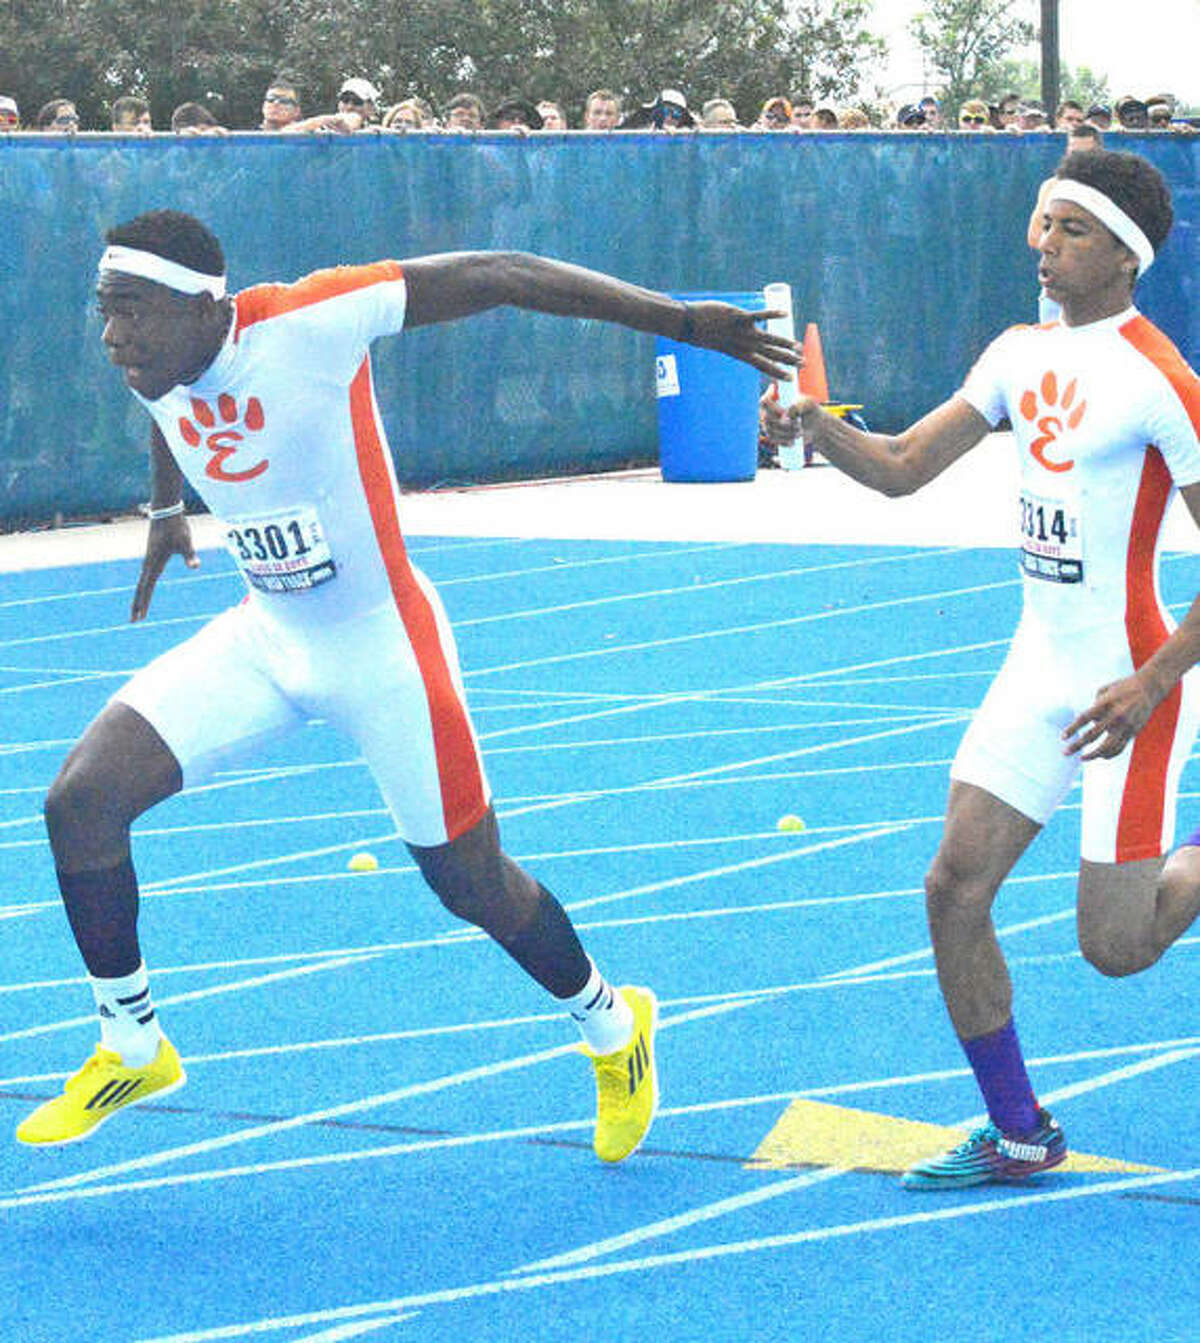 Edwardsville's Fontez Davis, left, takes a handoff from Devonte Tincher in the 400-meter relay at the 2015 Class 3A state meet. Davis ran on three medal-winning relays and was first in the long jump.